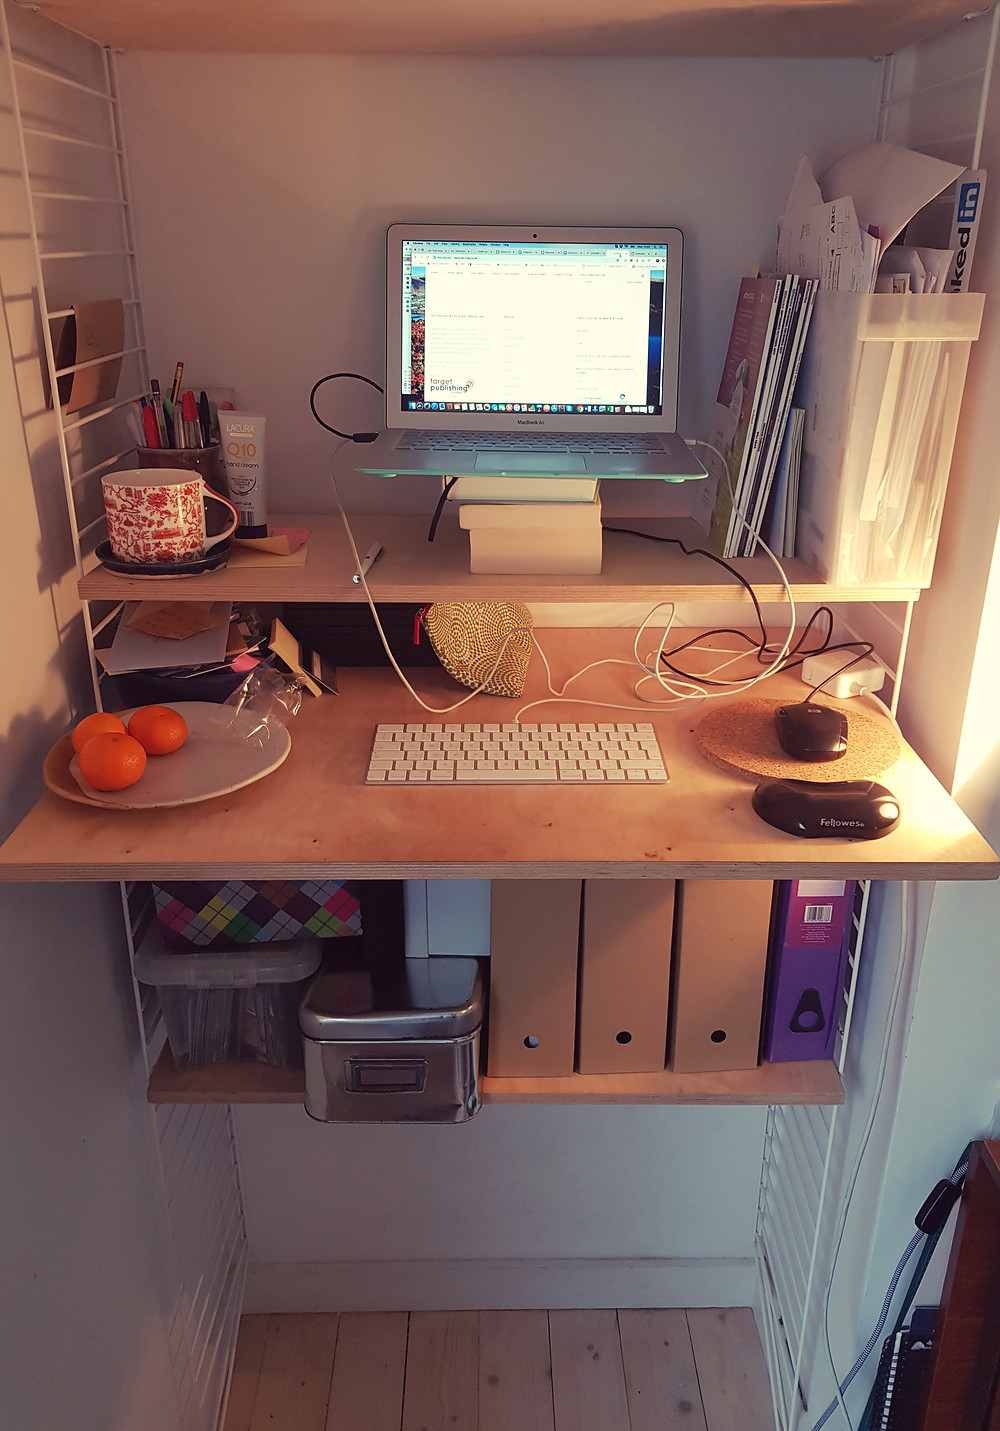 My new standing desk, complete with clementines and biscuit wrappers